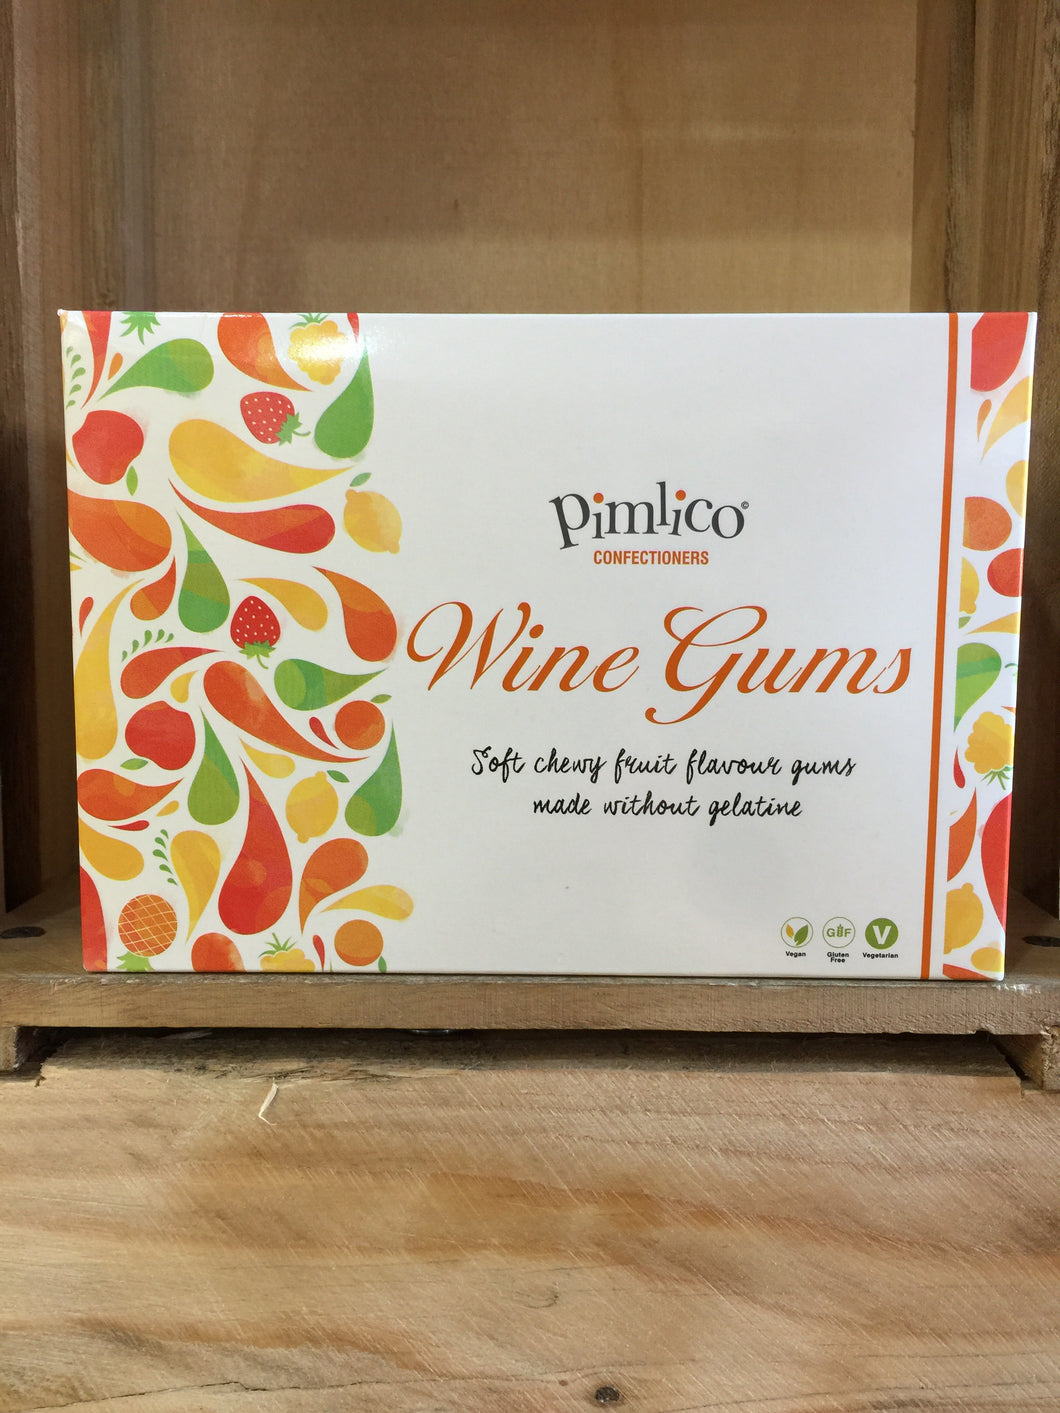 Pimlico Confectioners Wine Gums 200g